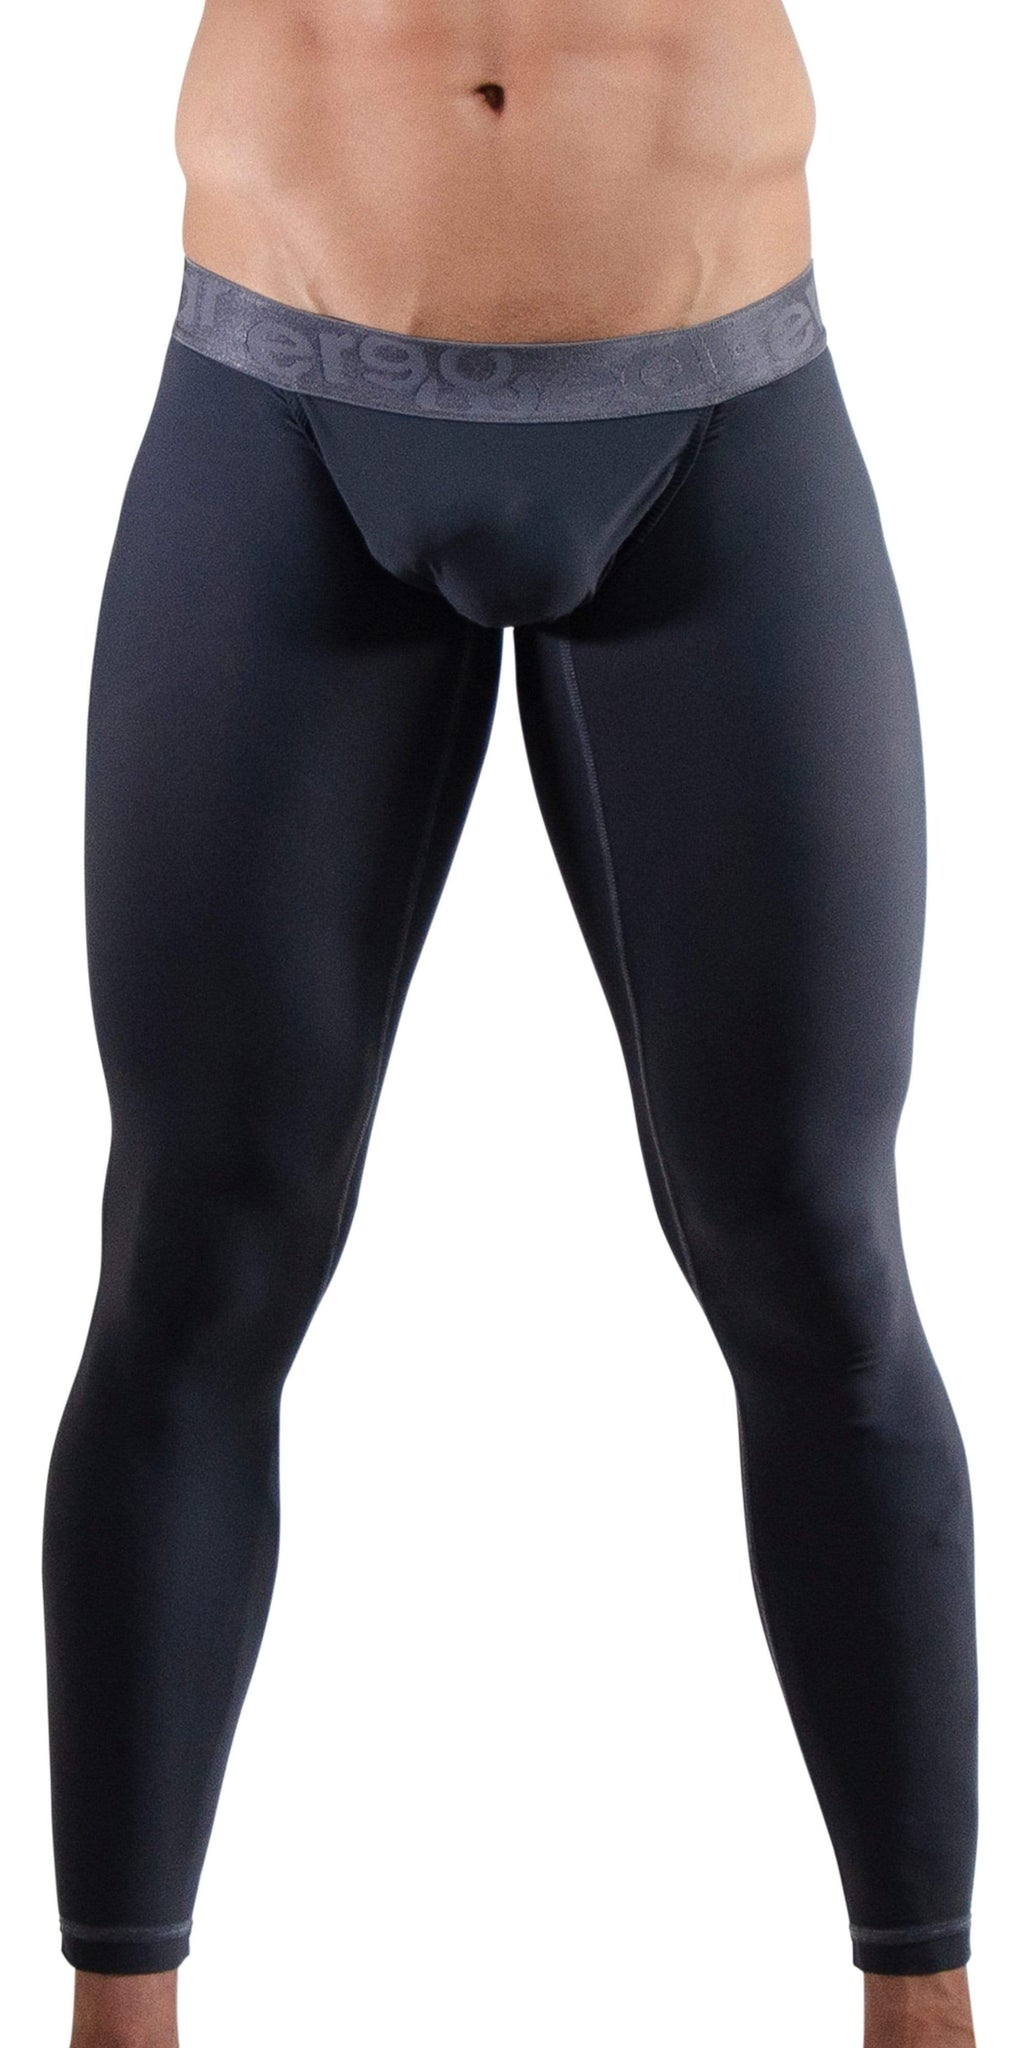 ERGOWEAR FEEL XV Long Johns In Space Gray